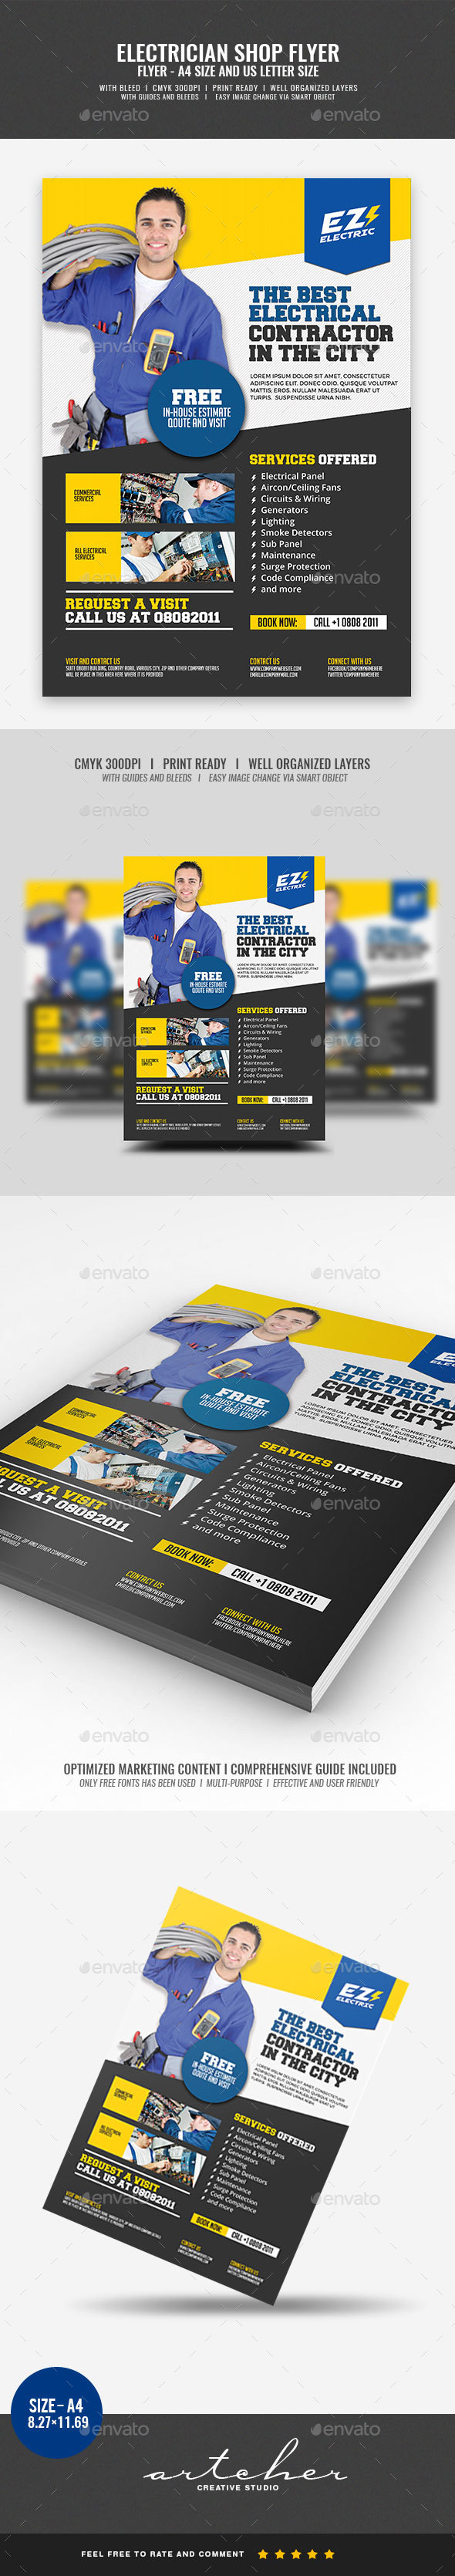 GraphicRiver Electrical Electrician Services Flyer 20432224